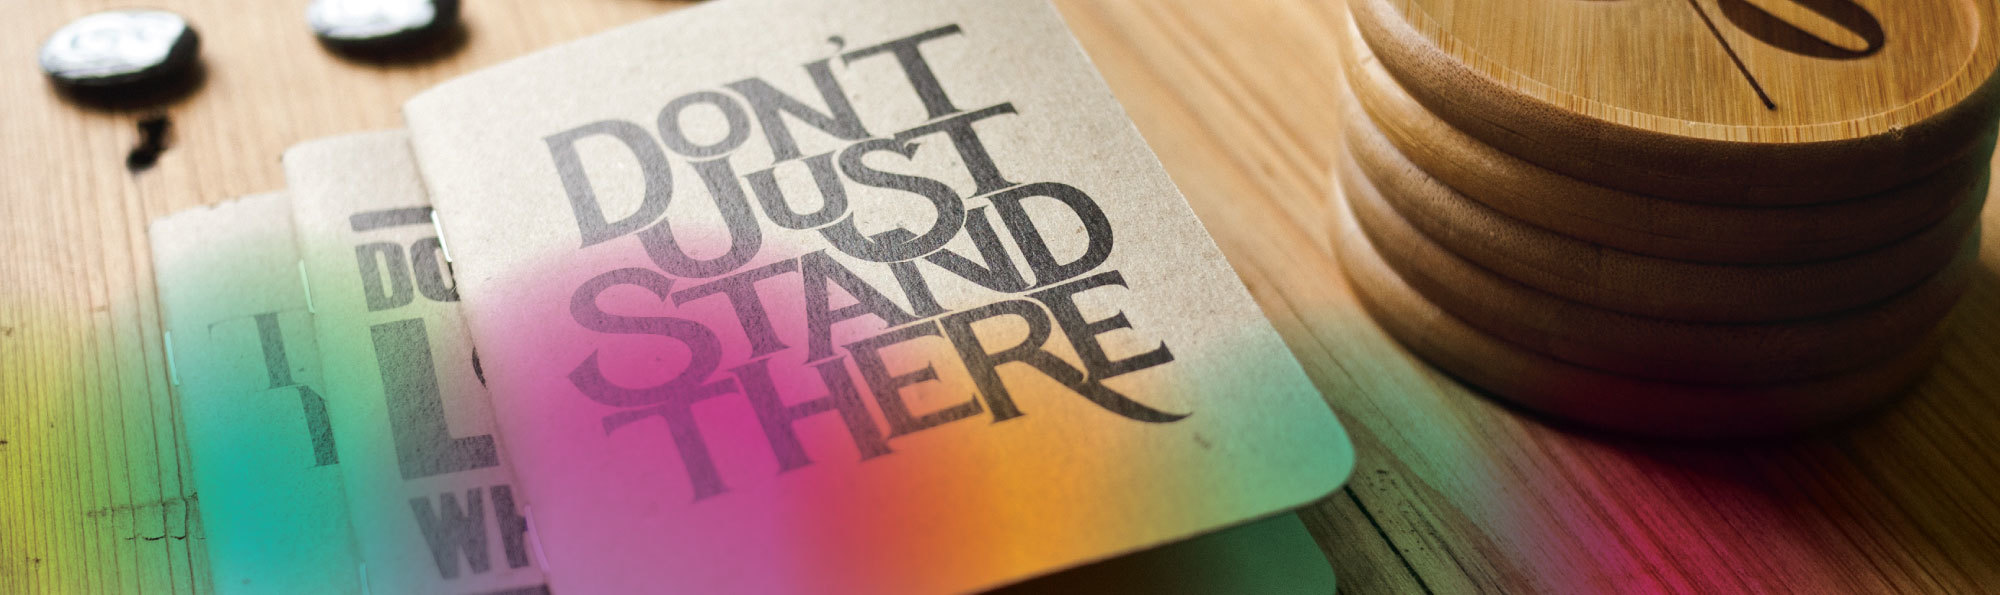 Booklet 'Don't Just Stand There'